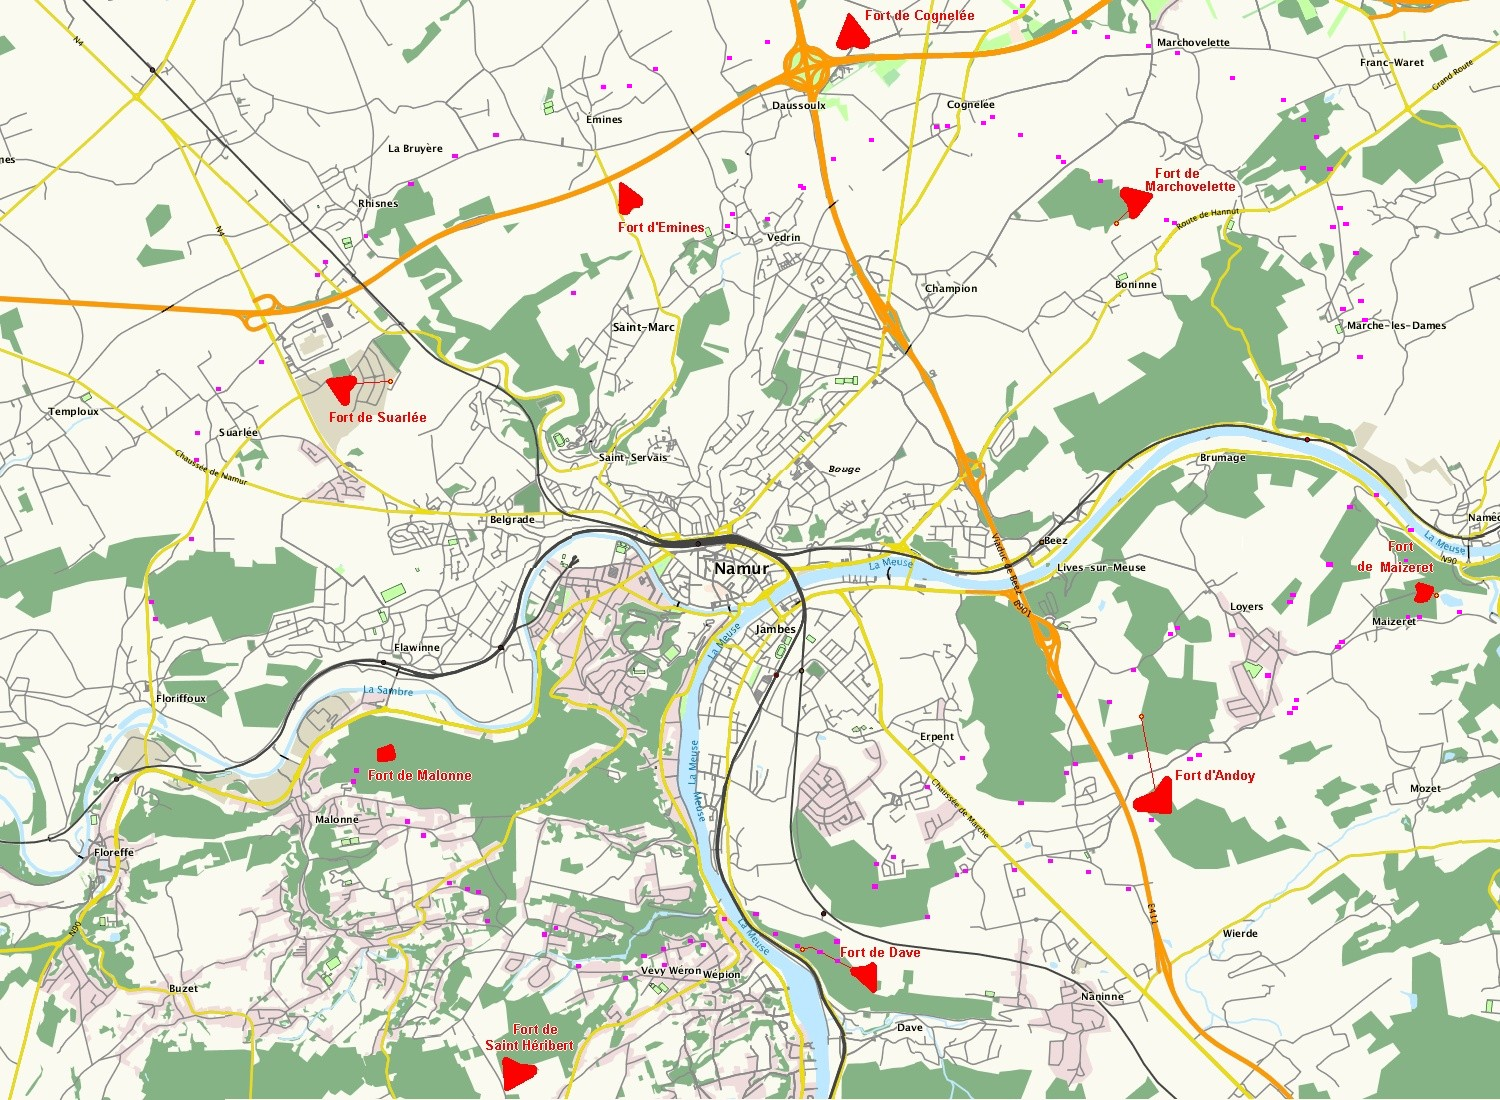 The nine forts surrounding the city of Namur